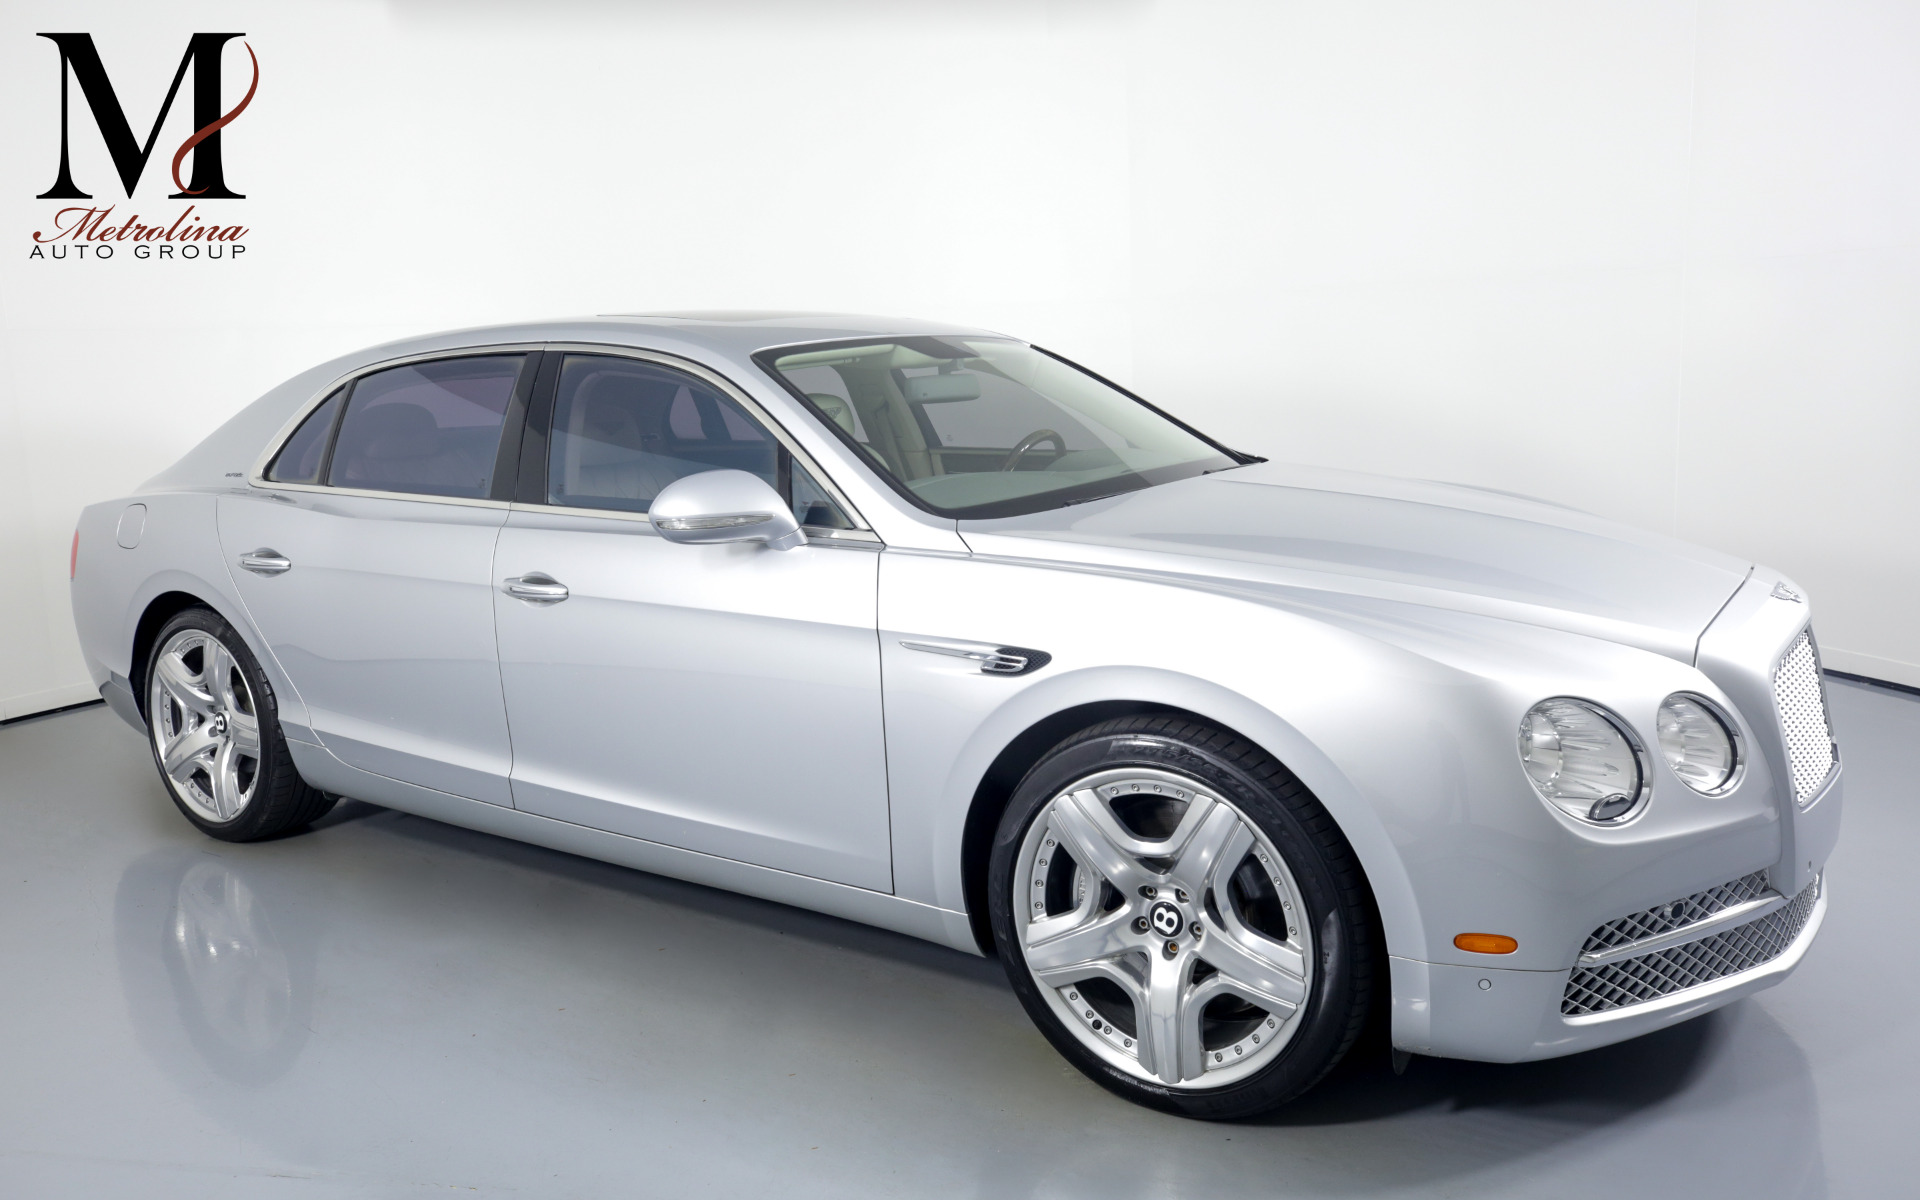 Used 2014 Bentley Flying Spur for sale $99,996 at Metrolina Auto Group in Charlotte NC 28217 - 1